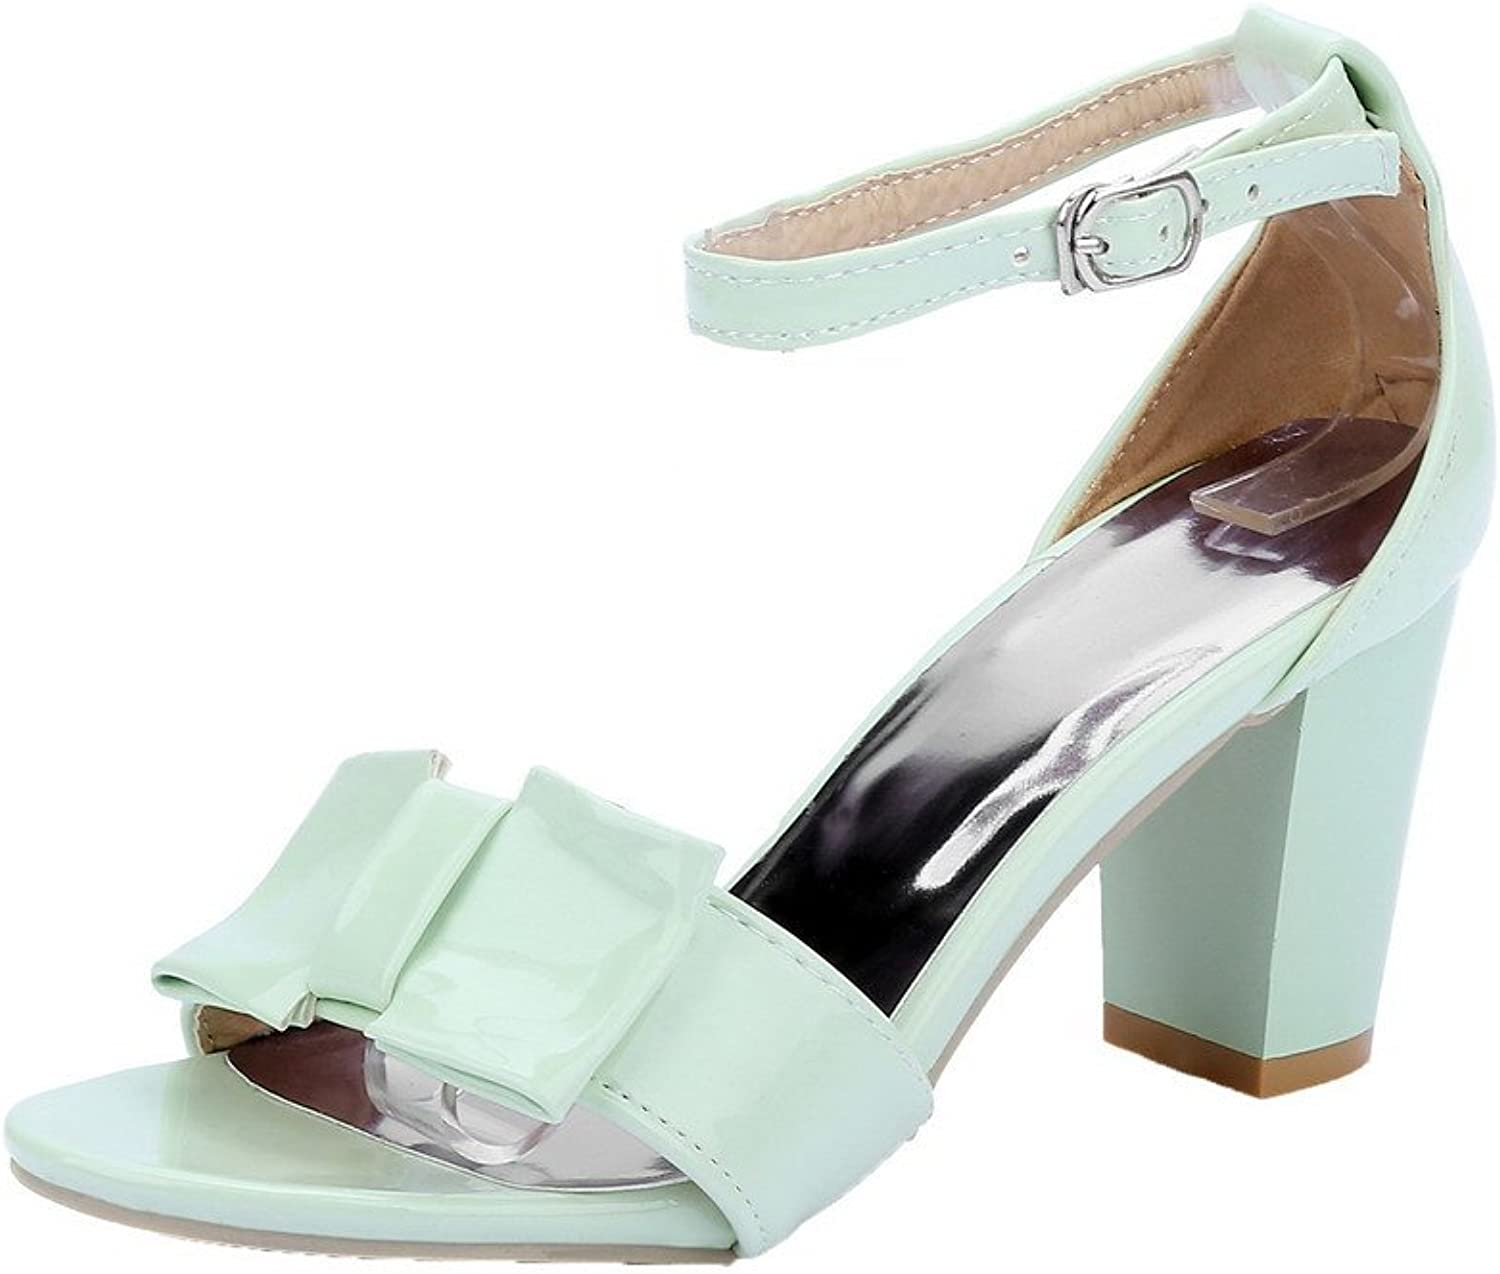 WeiPoot Women's Solid Patent Leather High-Heels Buckle Open-Toe Sandals